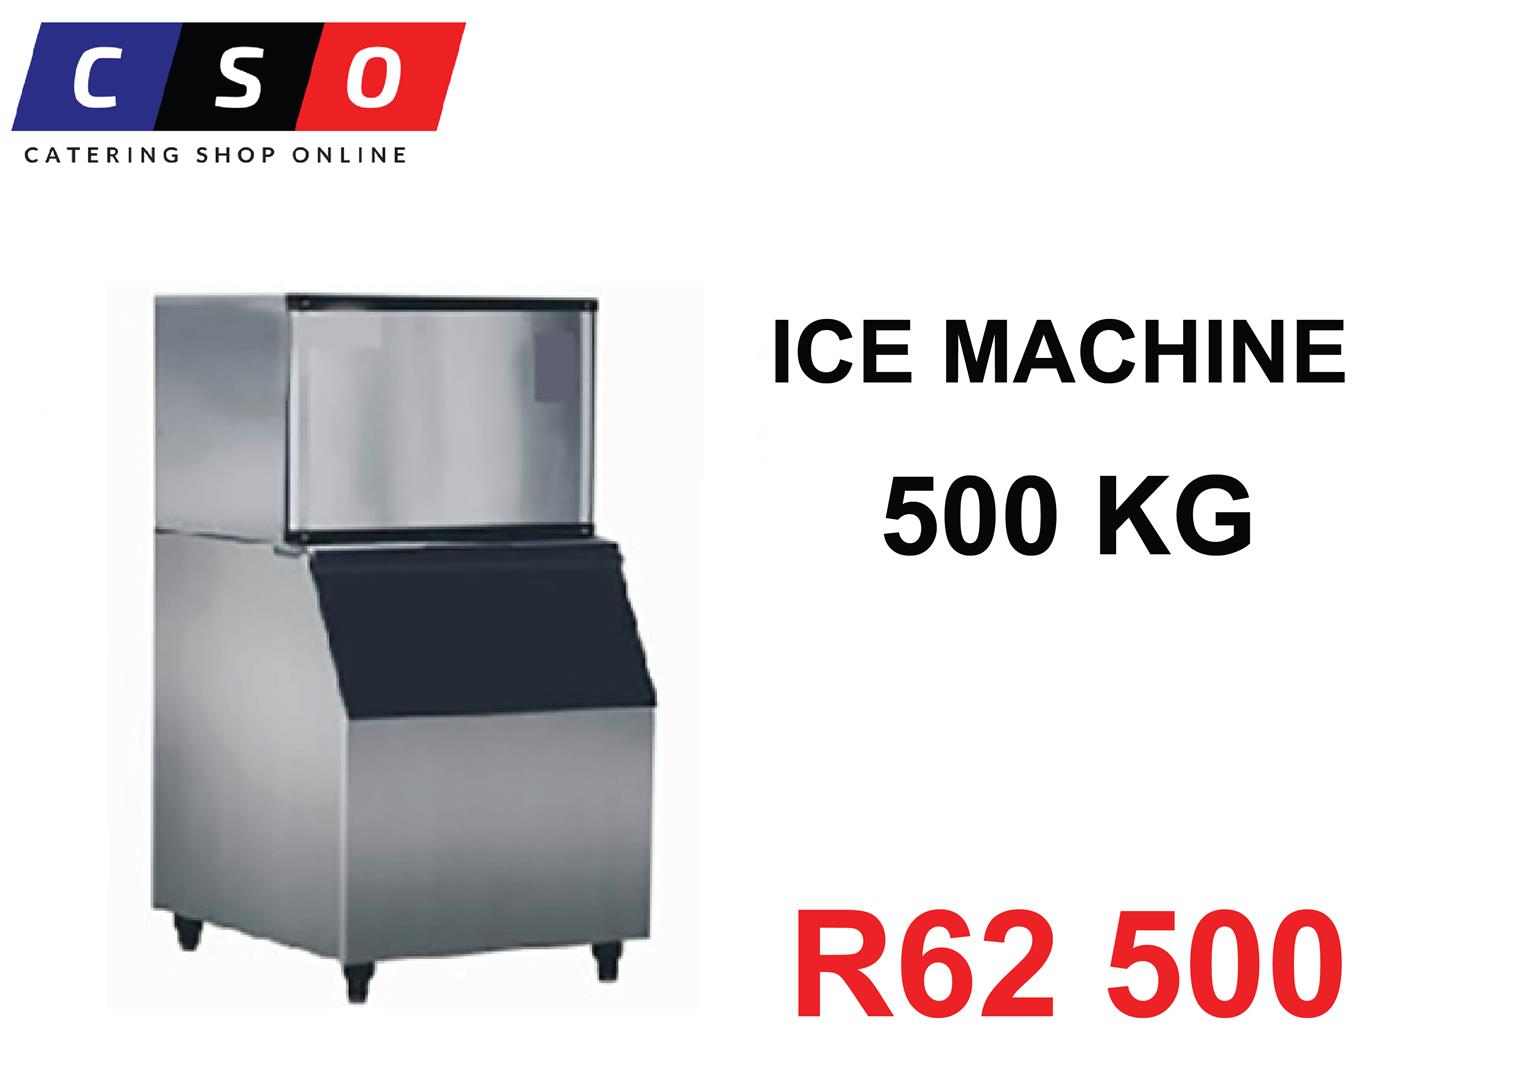 ICE MACHINE SPECIAL DEALS LOW PRICE